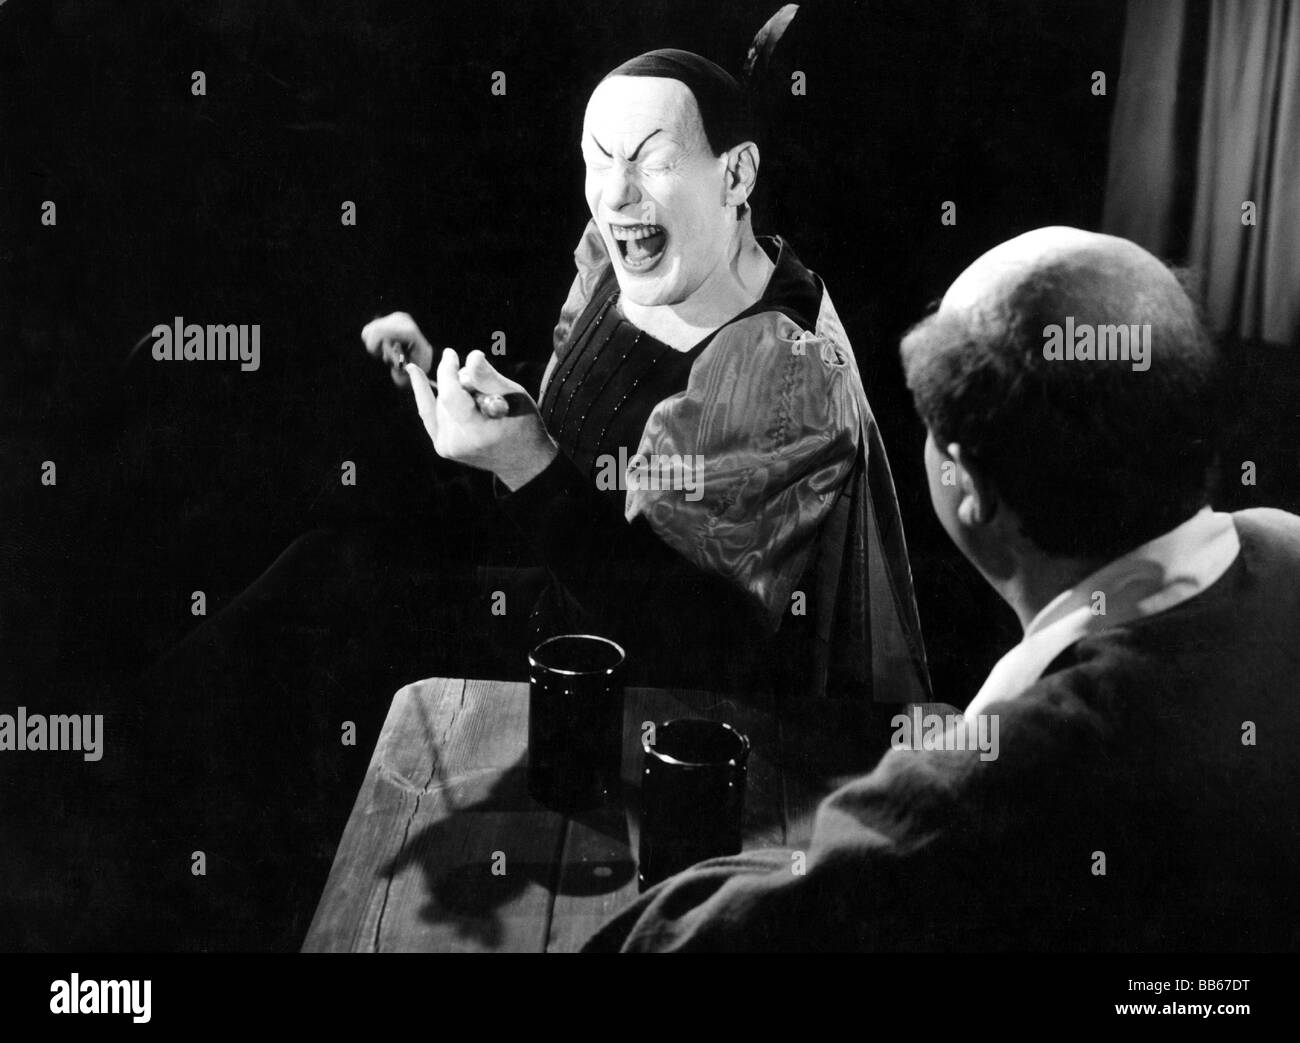 Gruendgens, Gustaf, 22.12.1899 - 7.10.1963, German actor and director, as Mephistopheles in 'Faust' by Johann - Stock Image